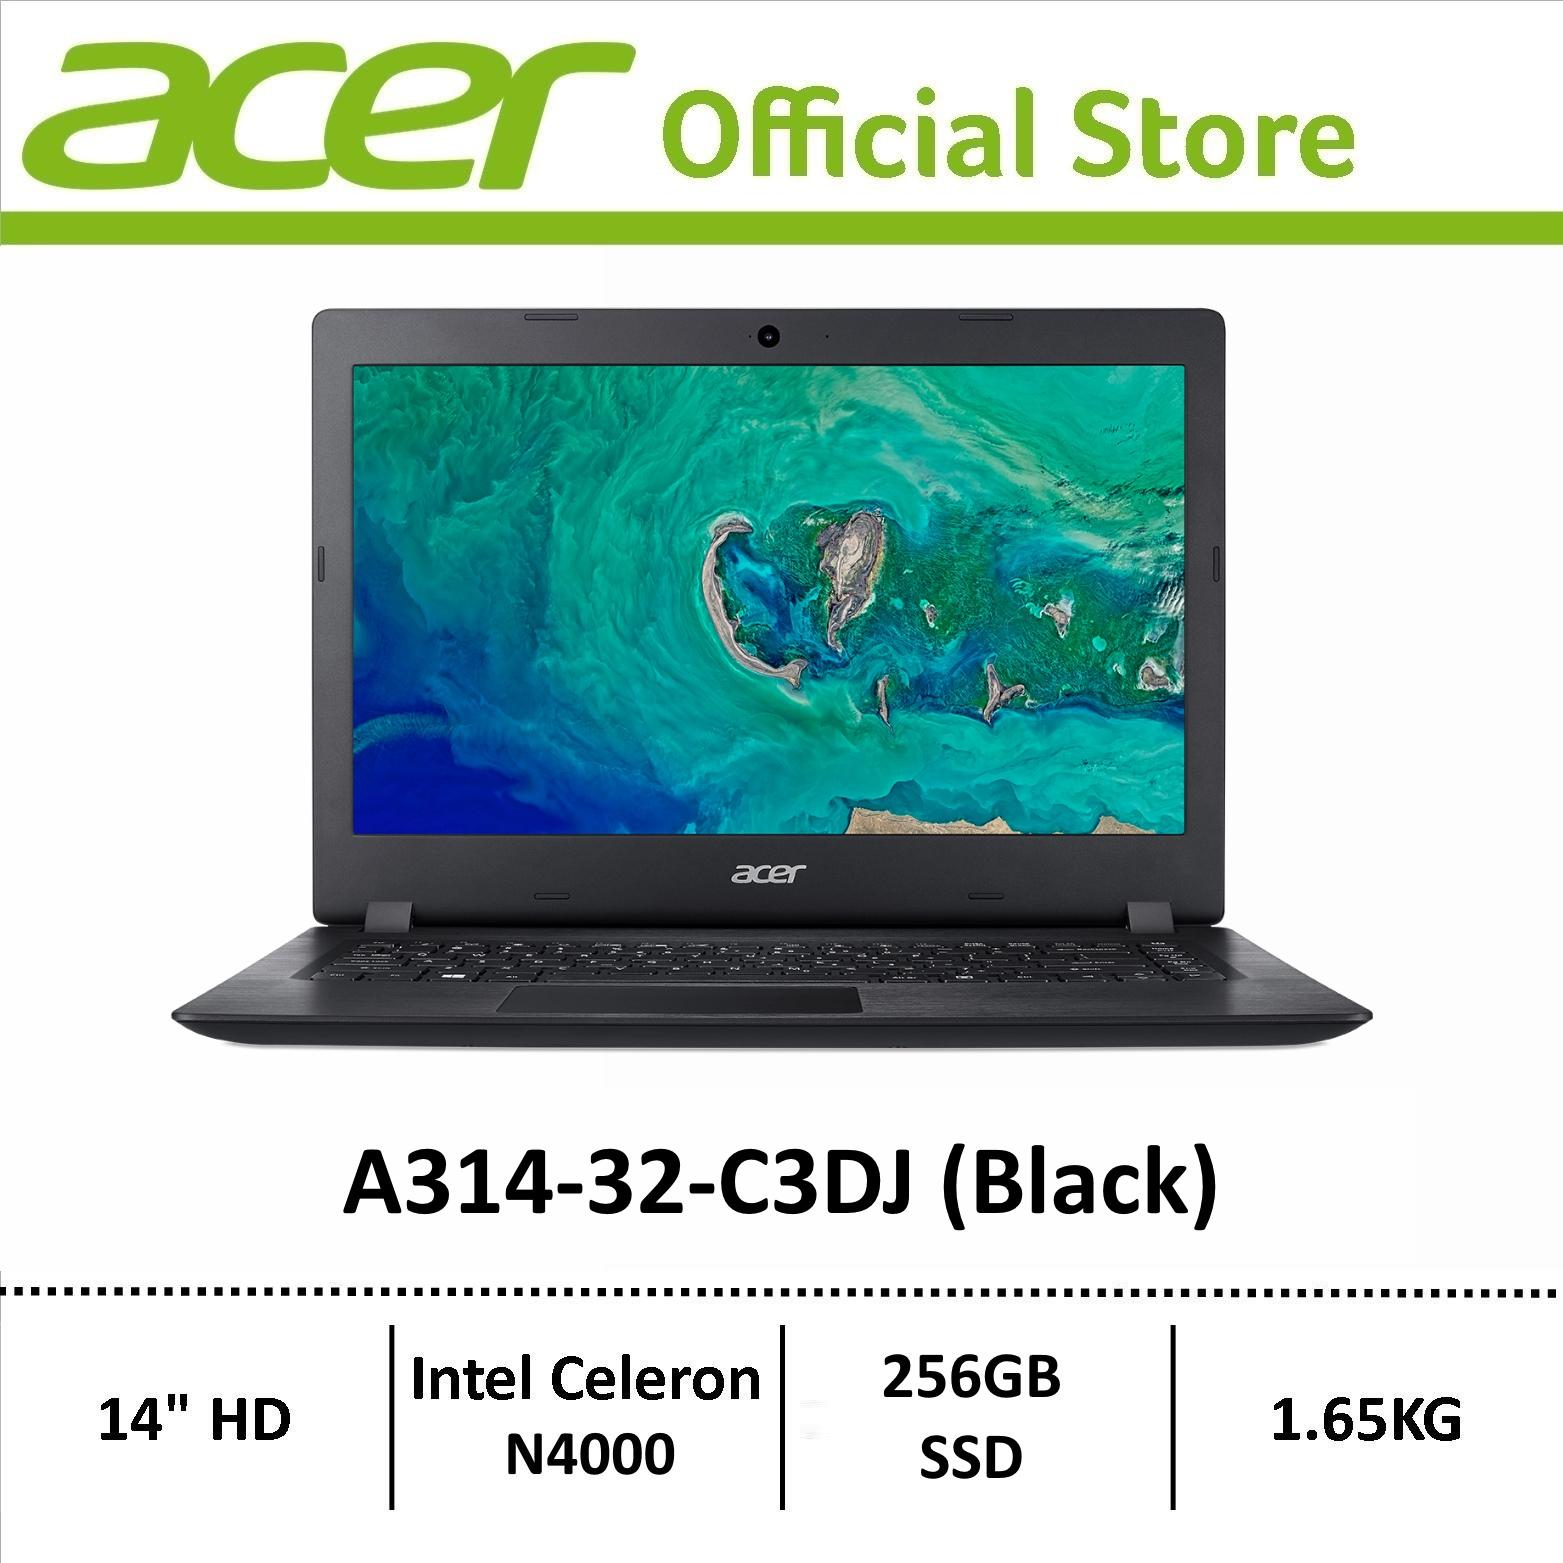 Acer Aspire A314-32-C3DJ (Black) Laptop with 256GB SSD Storage - Online Exclusive